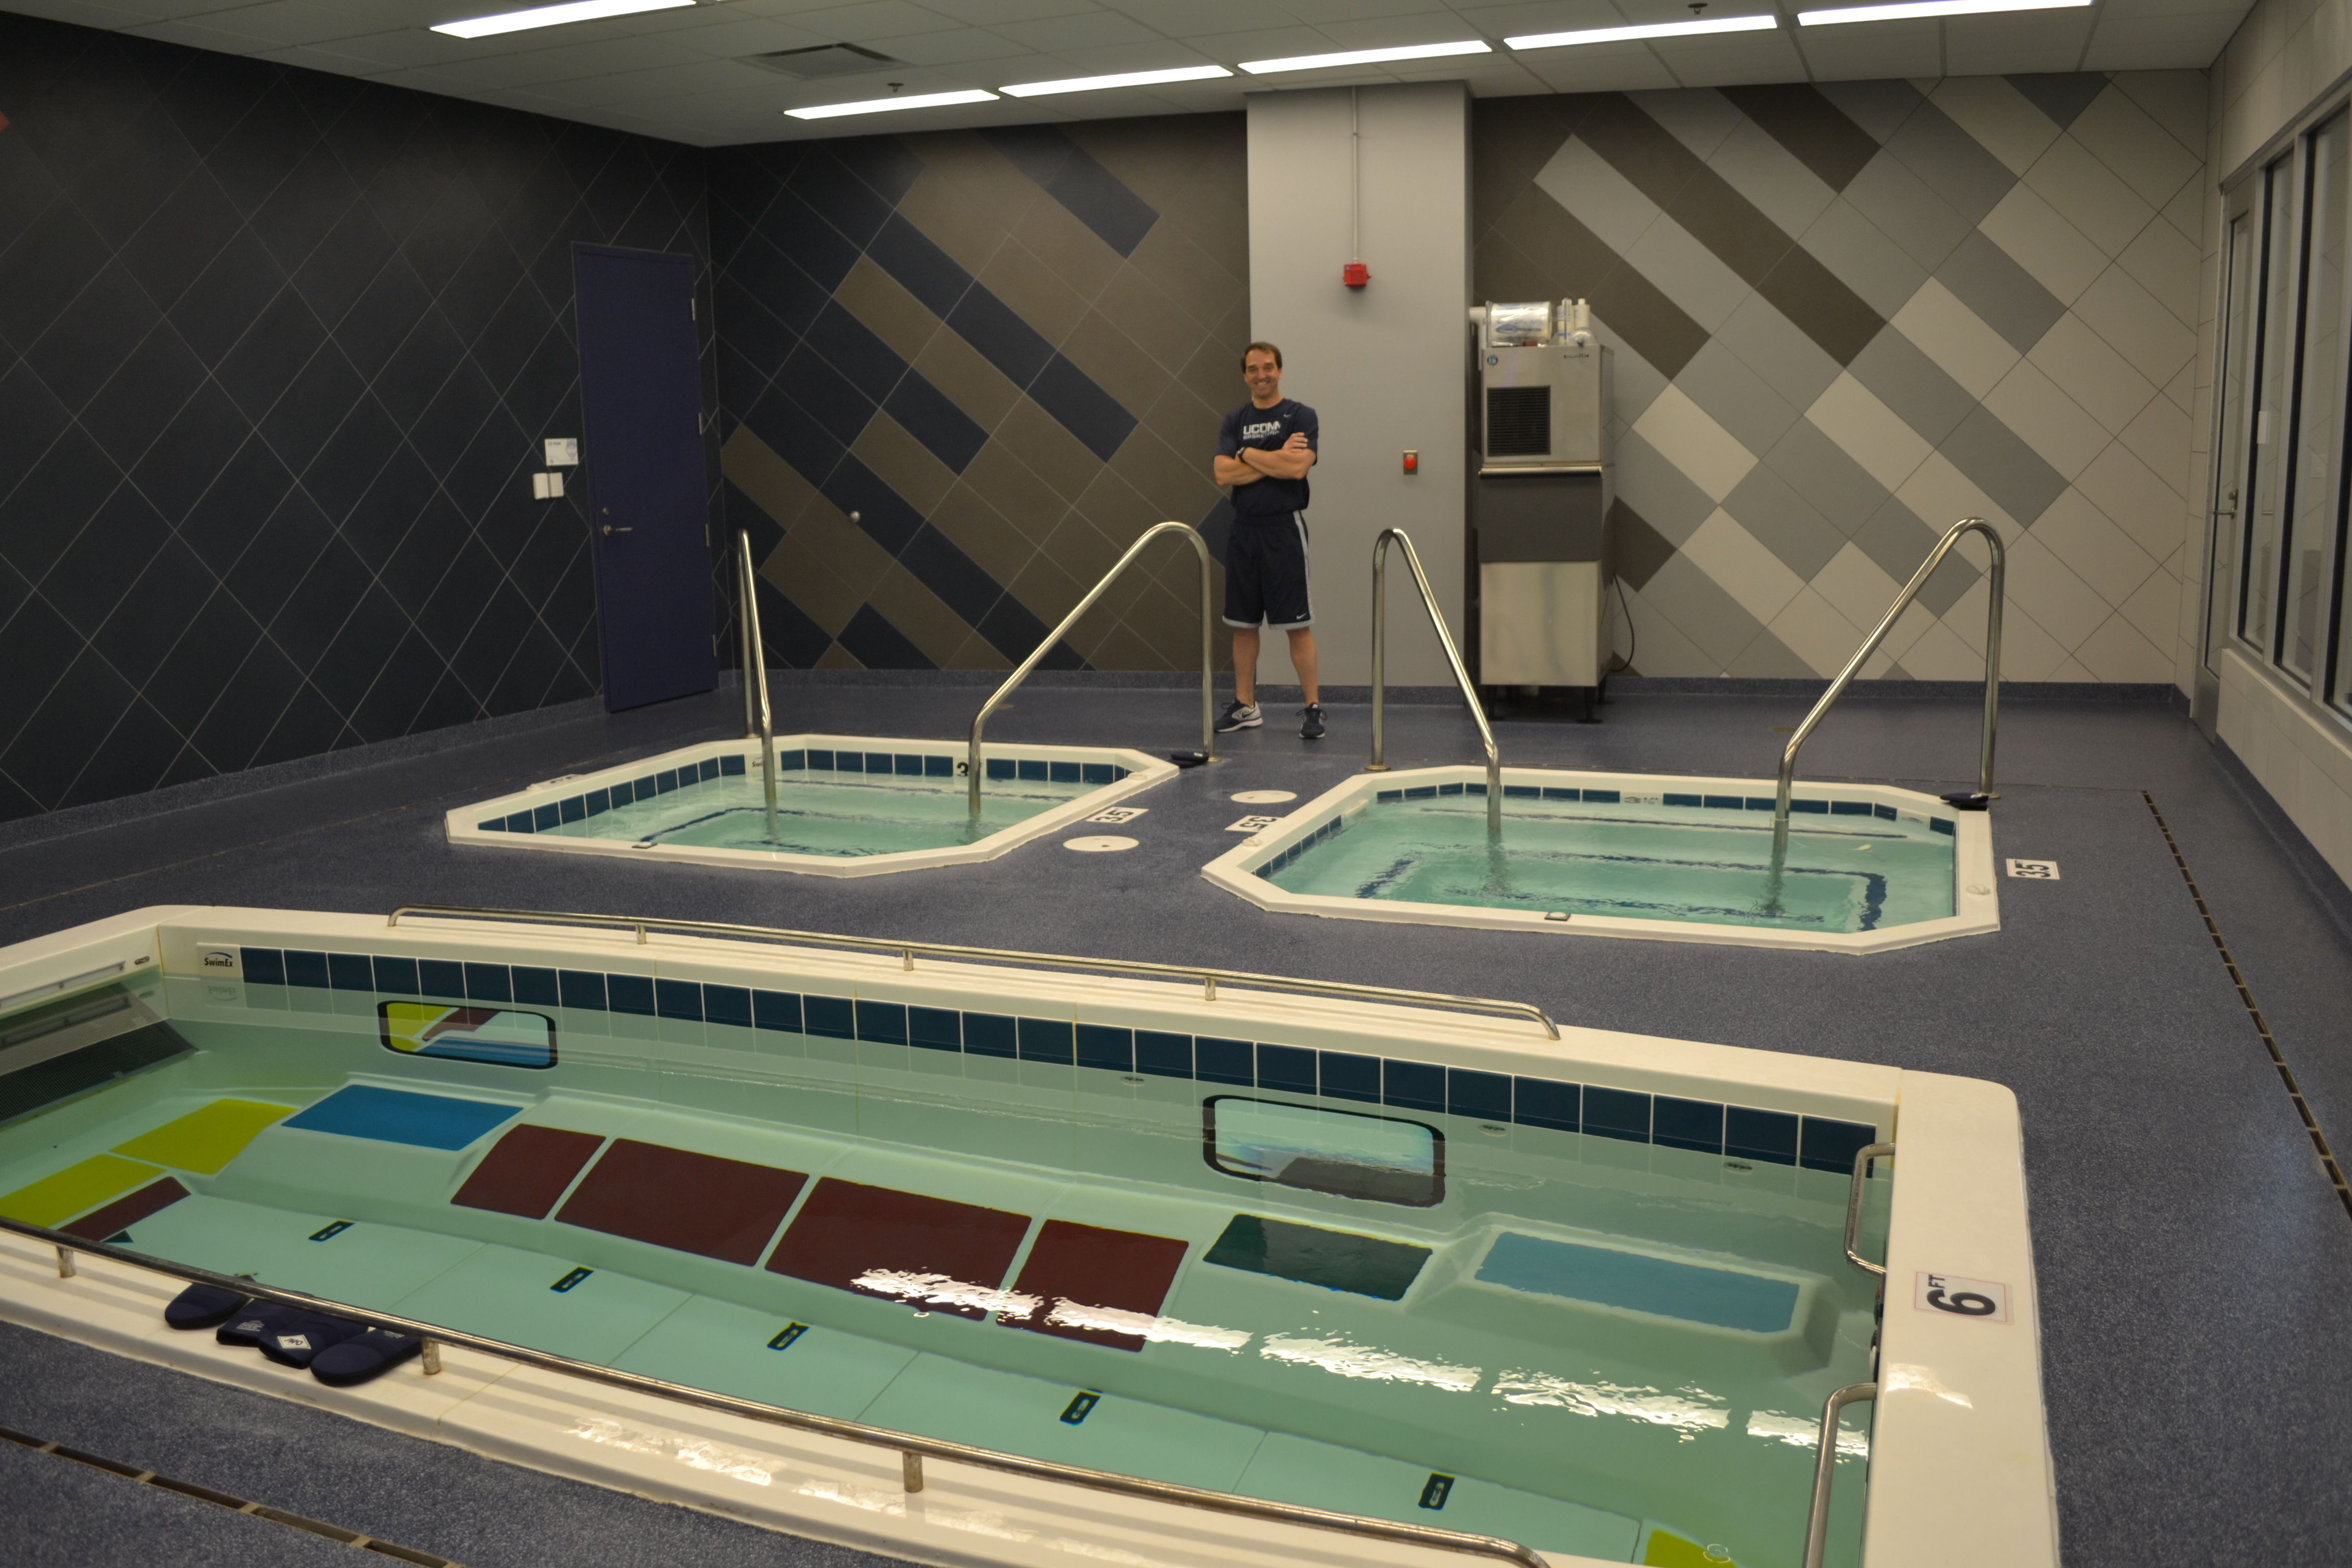 Hu huskies athletics - Uconn S World Class Facility For World Class Athletes These Swimex Pools And Plunge Tanks Are